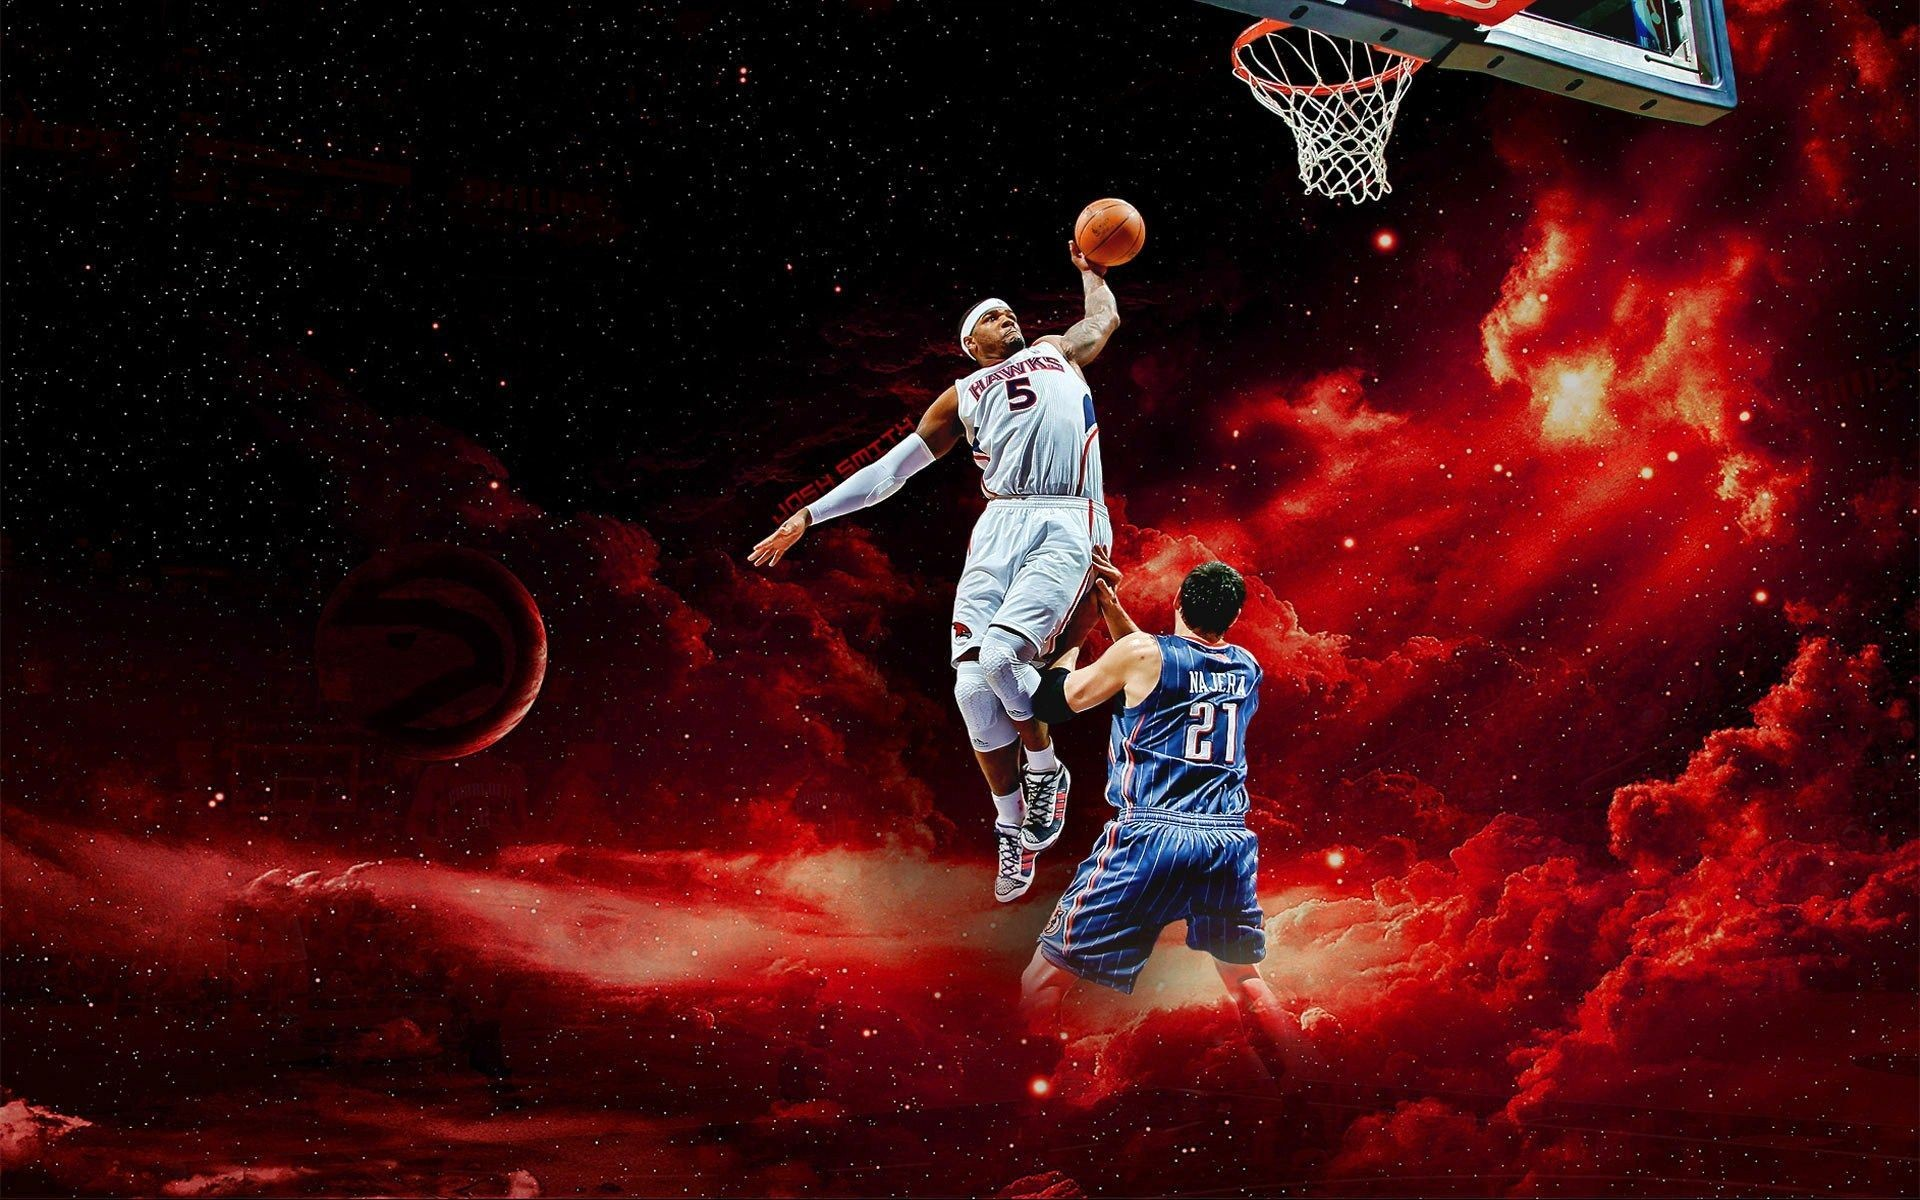 Basketball Wallpapers High Quality Download Free 1920×1200 HD Sport  Wallpapers (43 Wallpapers)